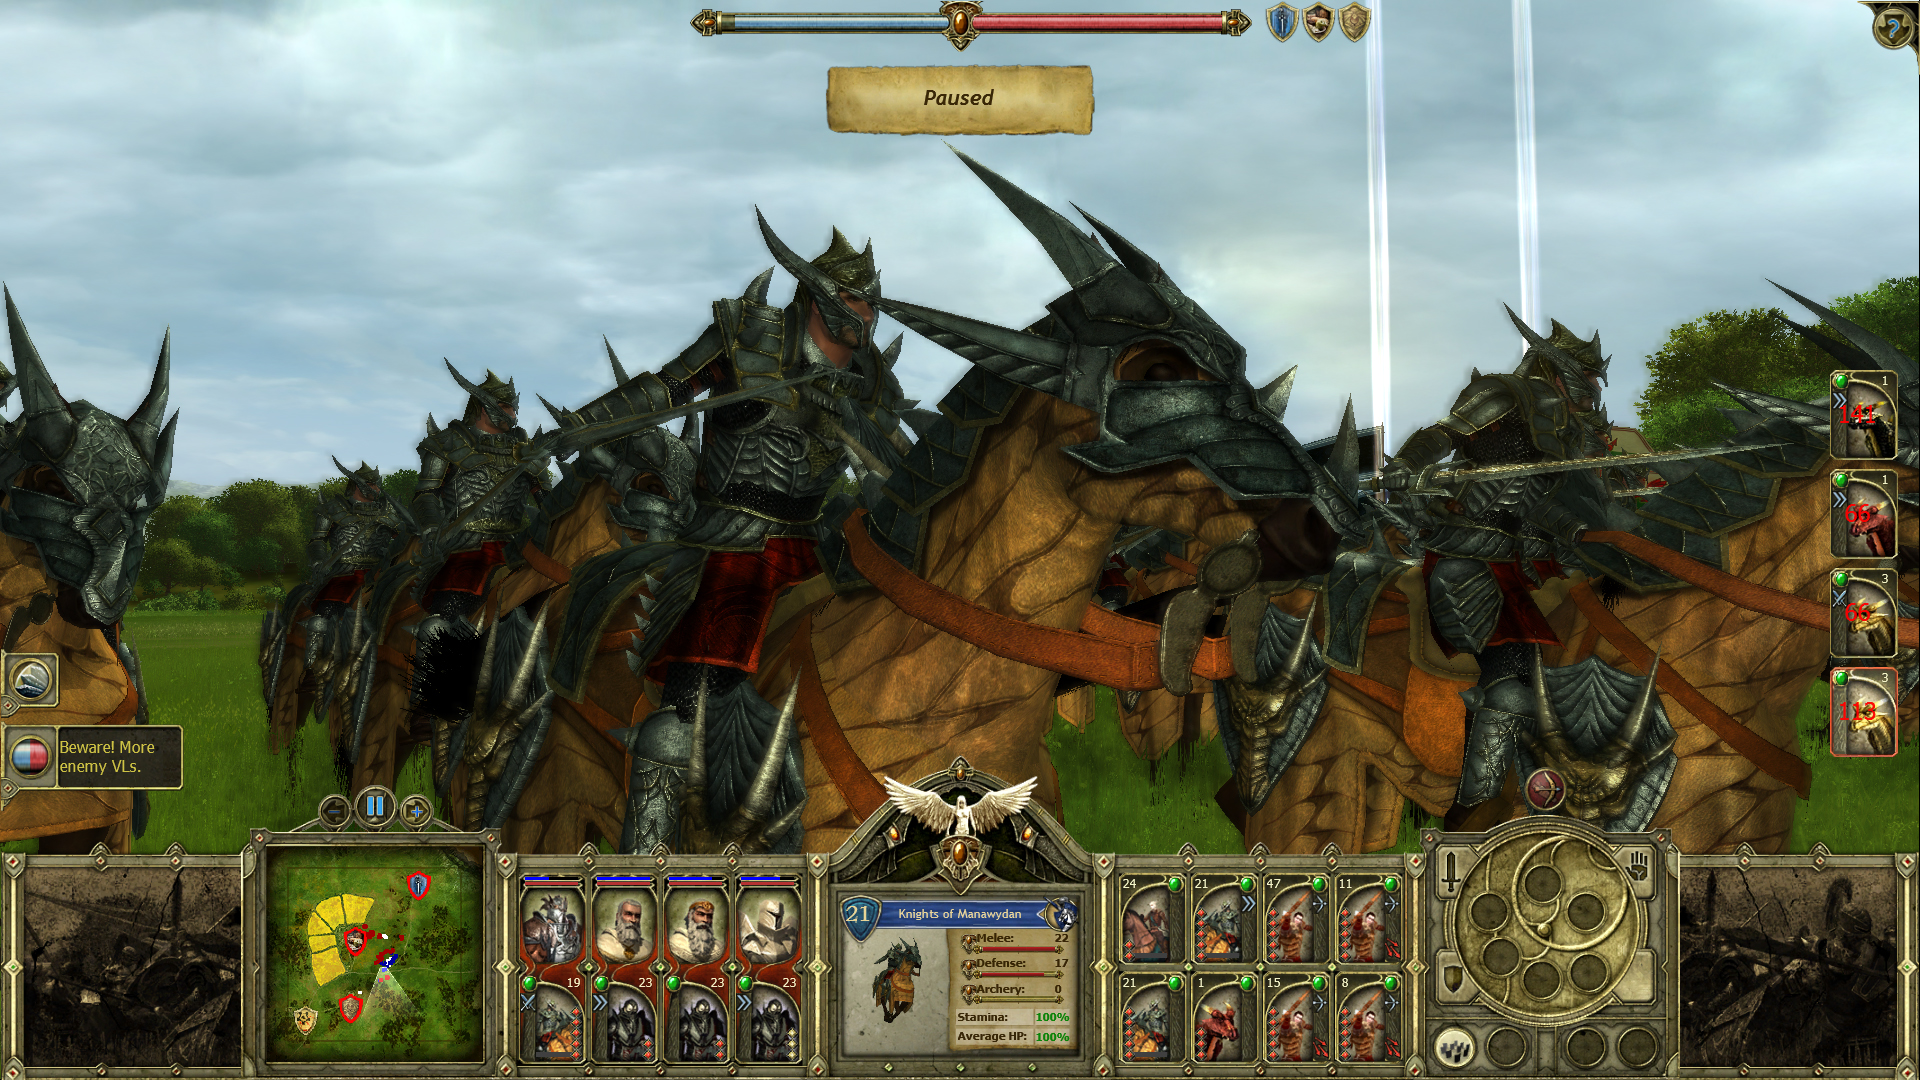 King Arthur: The Druids screenshot